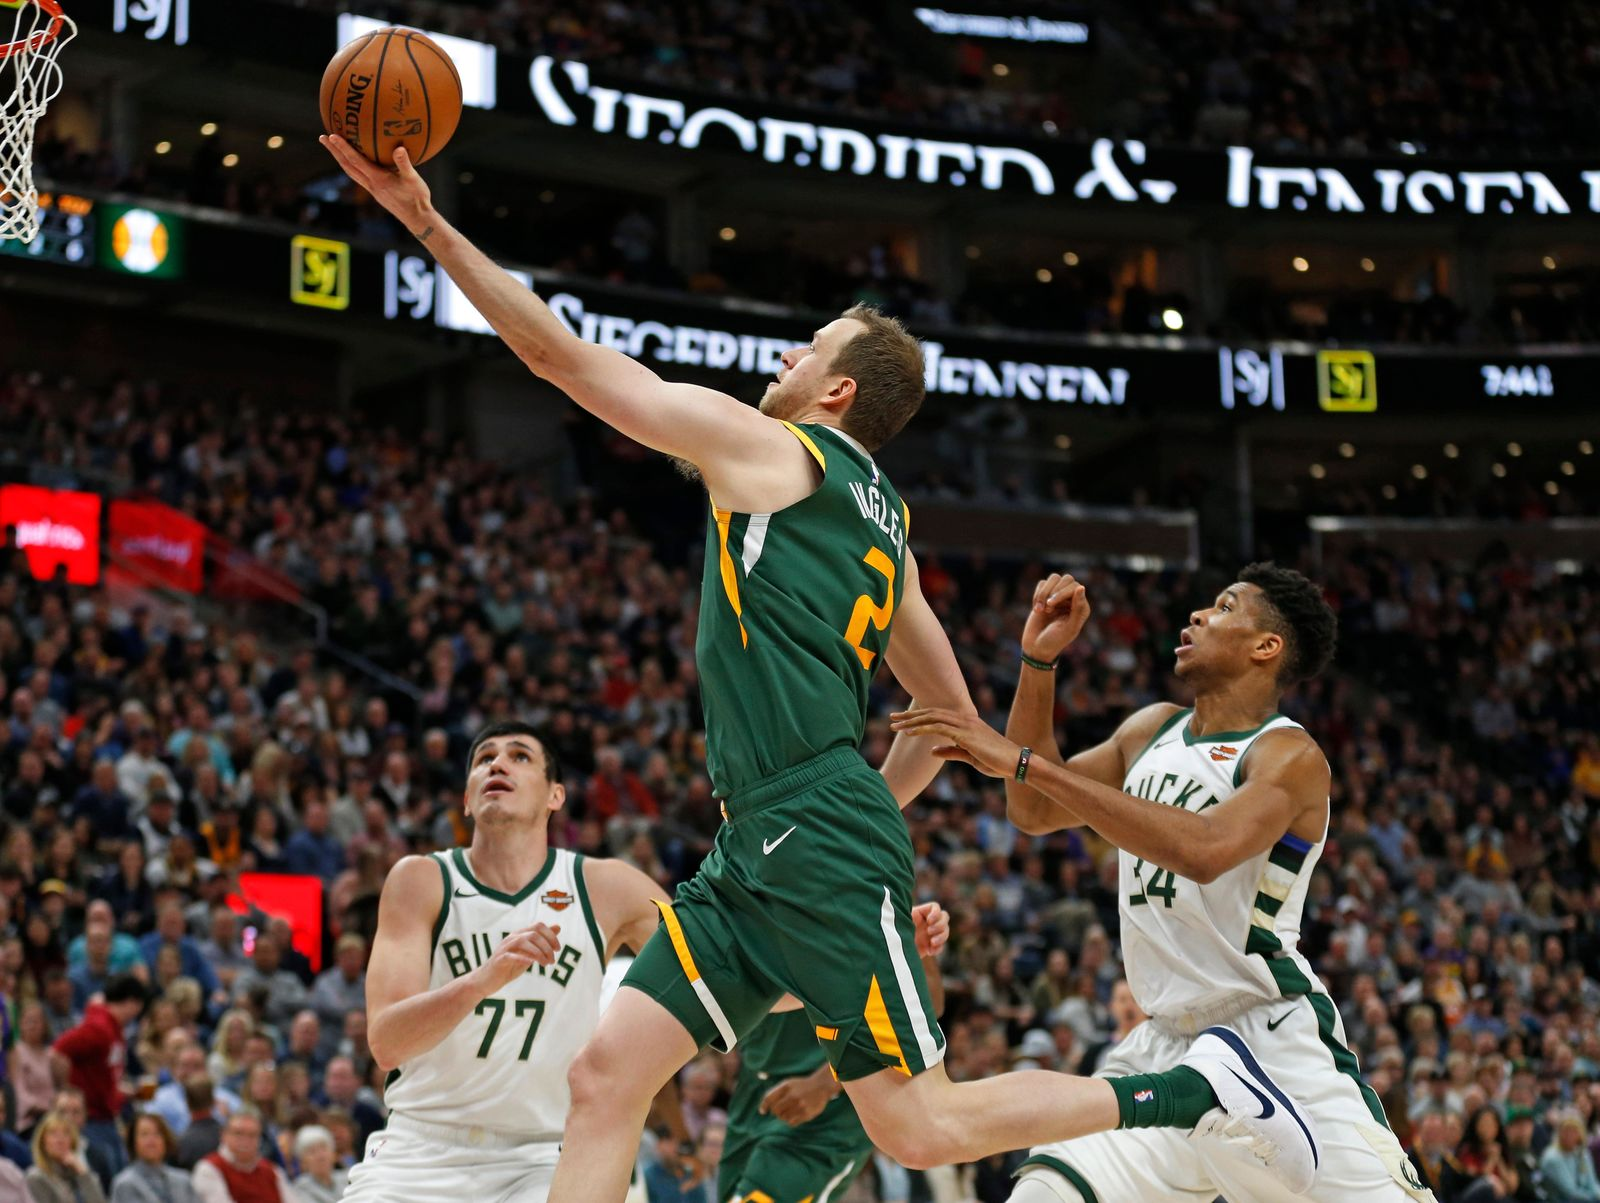 Utah Jazz forward Joe Ingles (2) goes to the basket as Milwaukee Bucks' Ersan Ilyasova (77) and Giannis Antetokounmpo (34) defend during the first half of an NBA basketball game Saturday, March 2, 2019, in Salt Lake City. (AP Photo/Rick Bowmer)